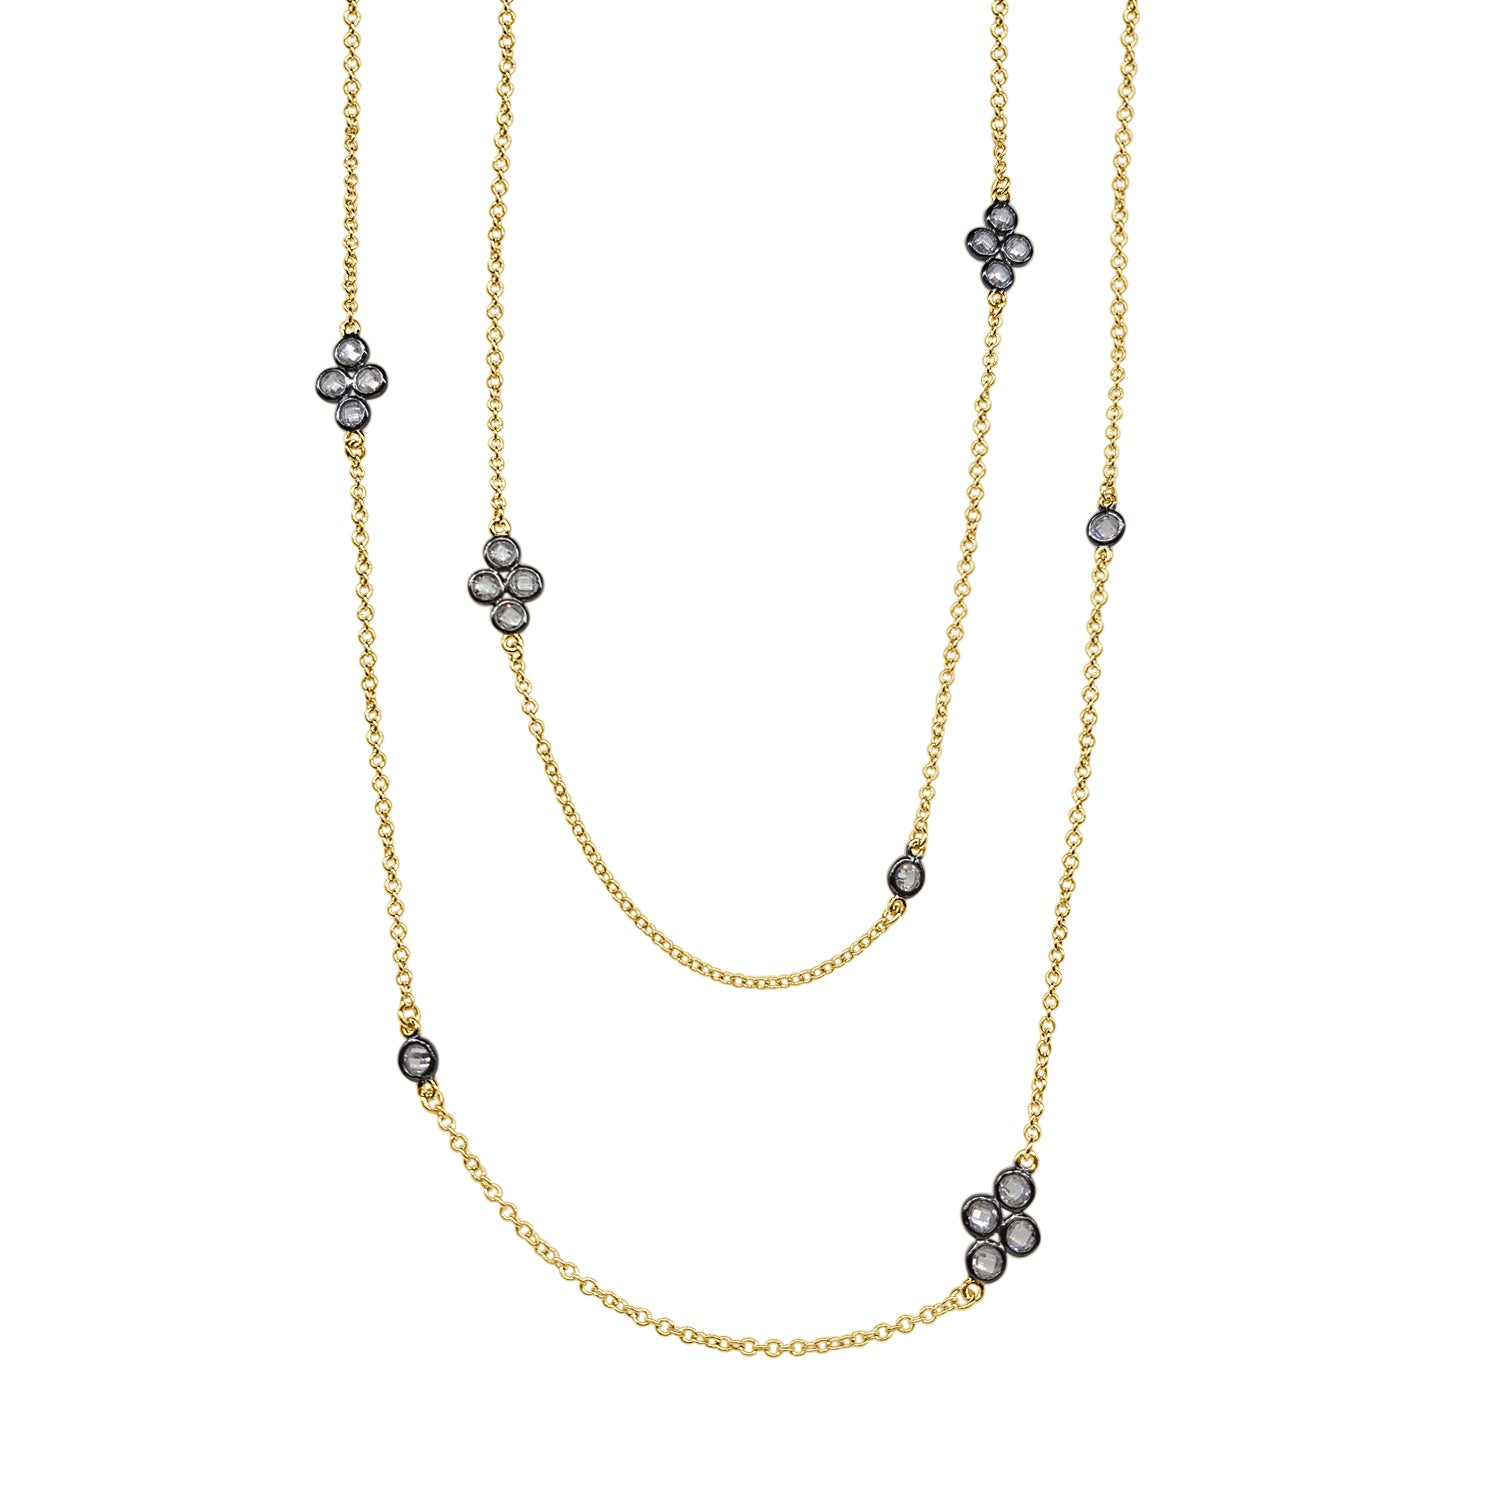 Freida Rothman Signature Four Point Station Necklace In Two Tone